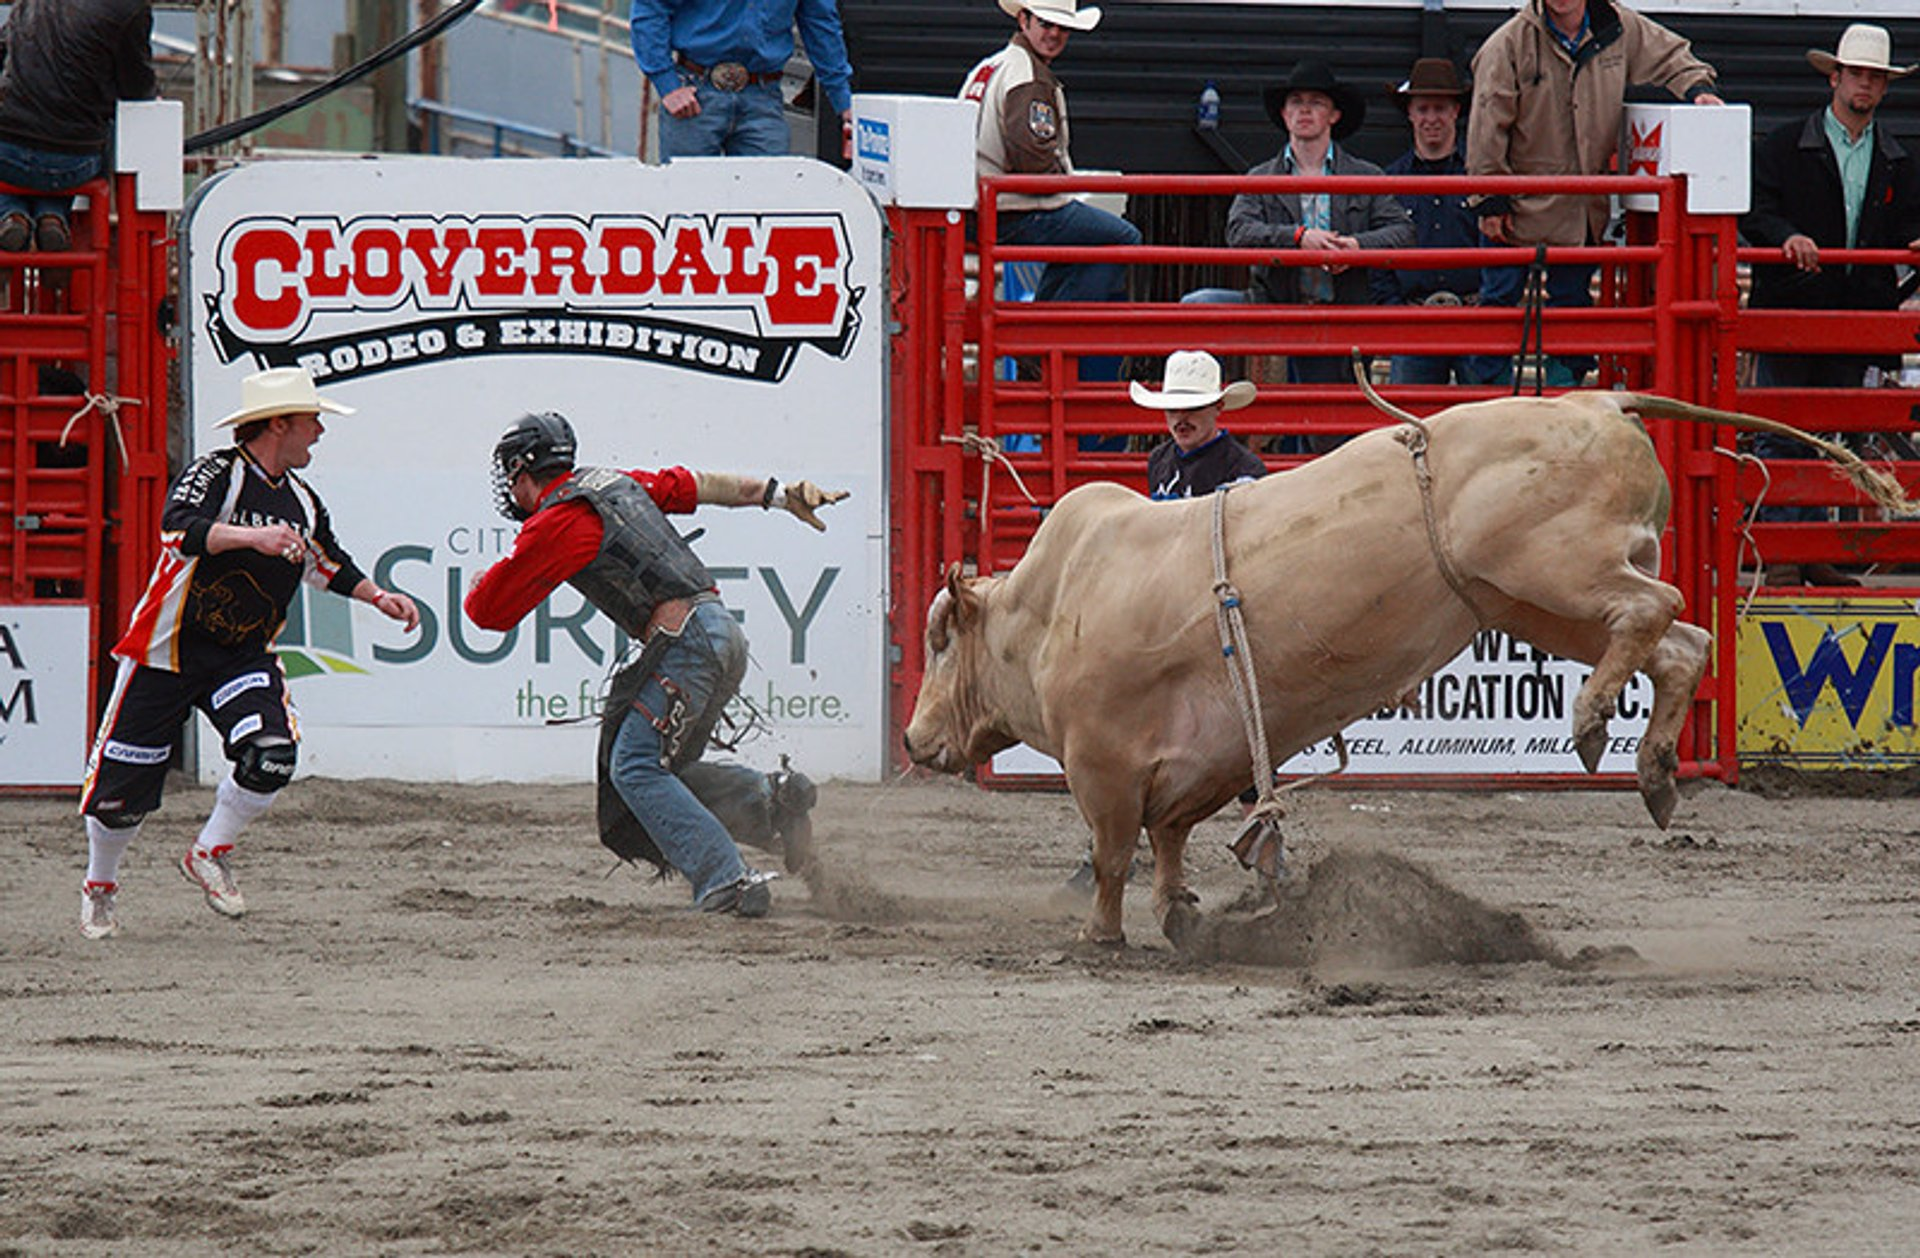 Best time for Cloverdale Rodeo and Country Fair in Vancouver 2019